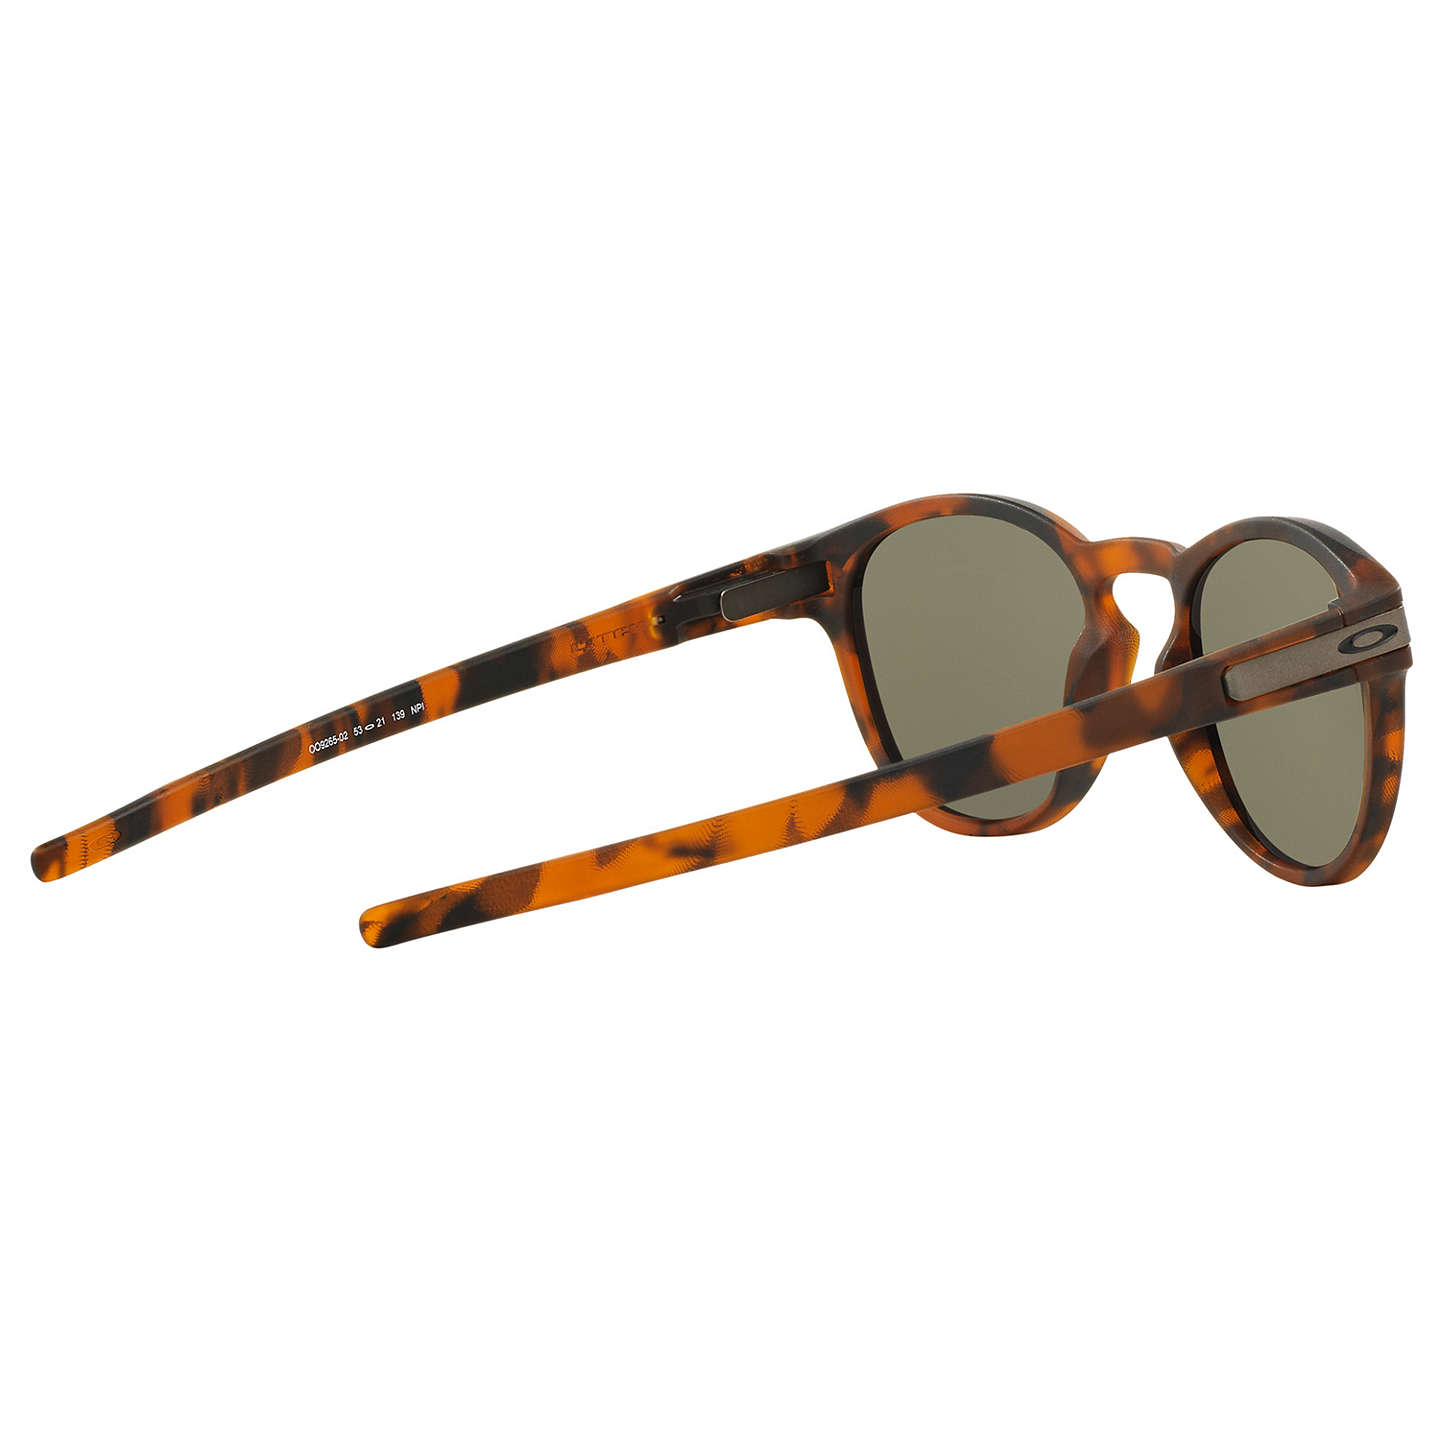 BuyOakley OO9265 Latch Round Sunglasses, Tortoise/Dark Green Online at johnlewis.com